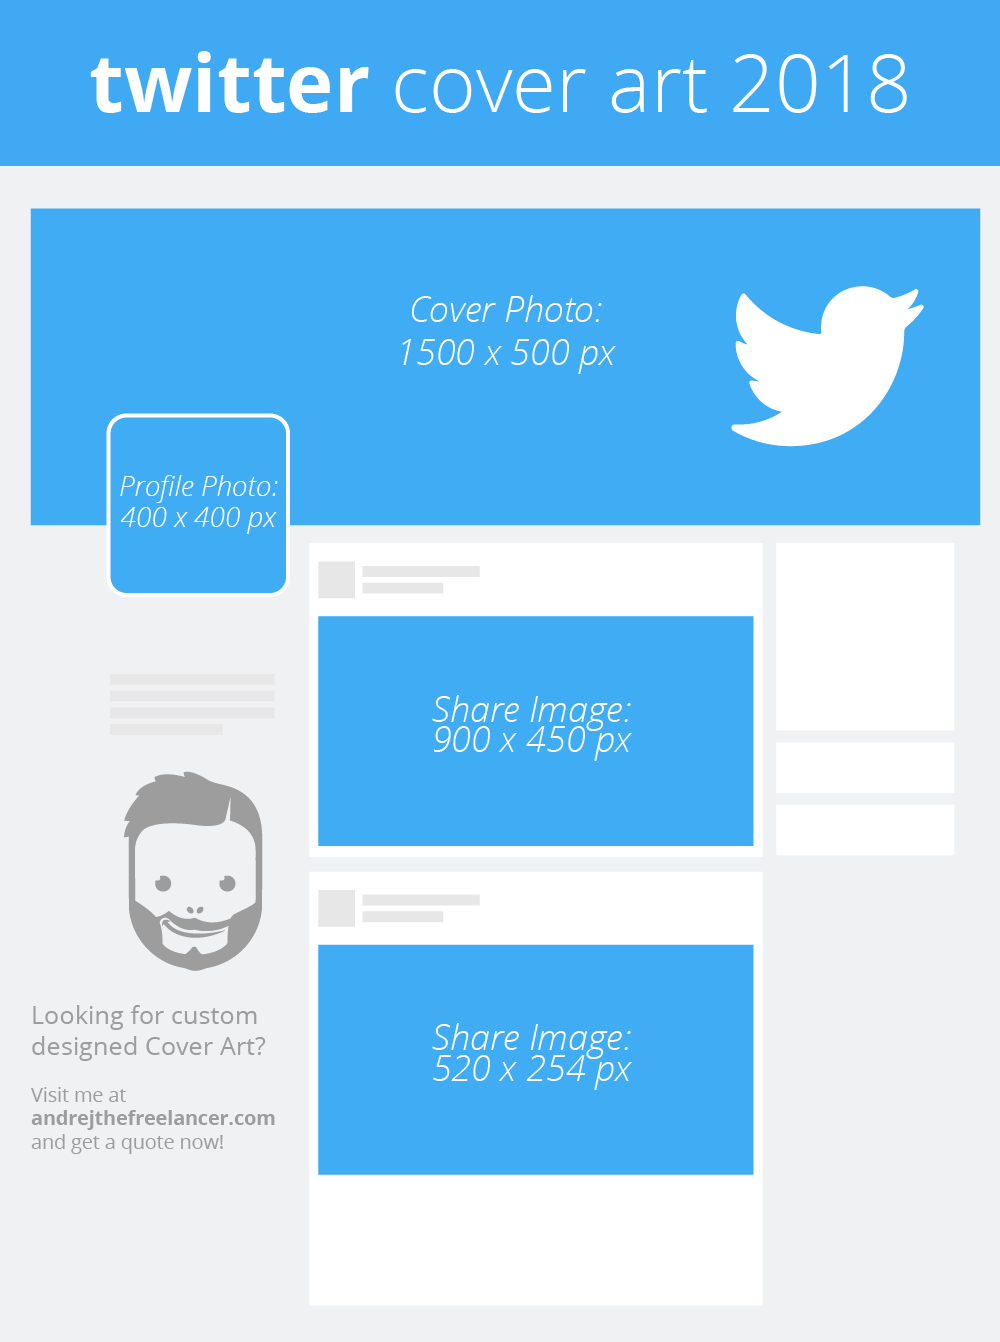 Twitter CoverArt Infographic sizes design